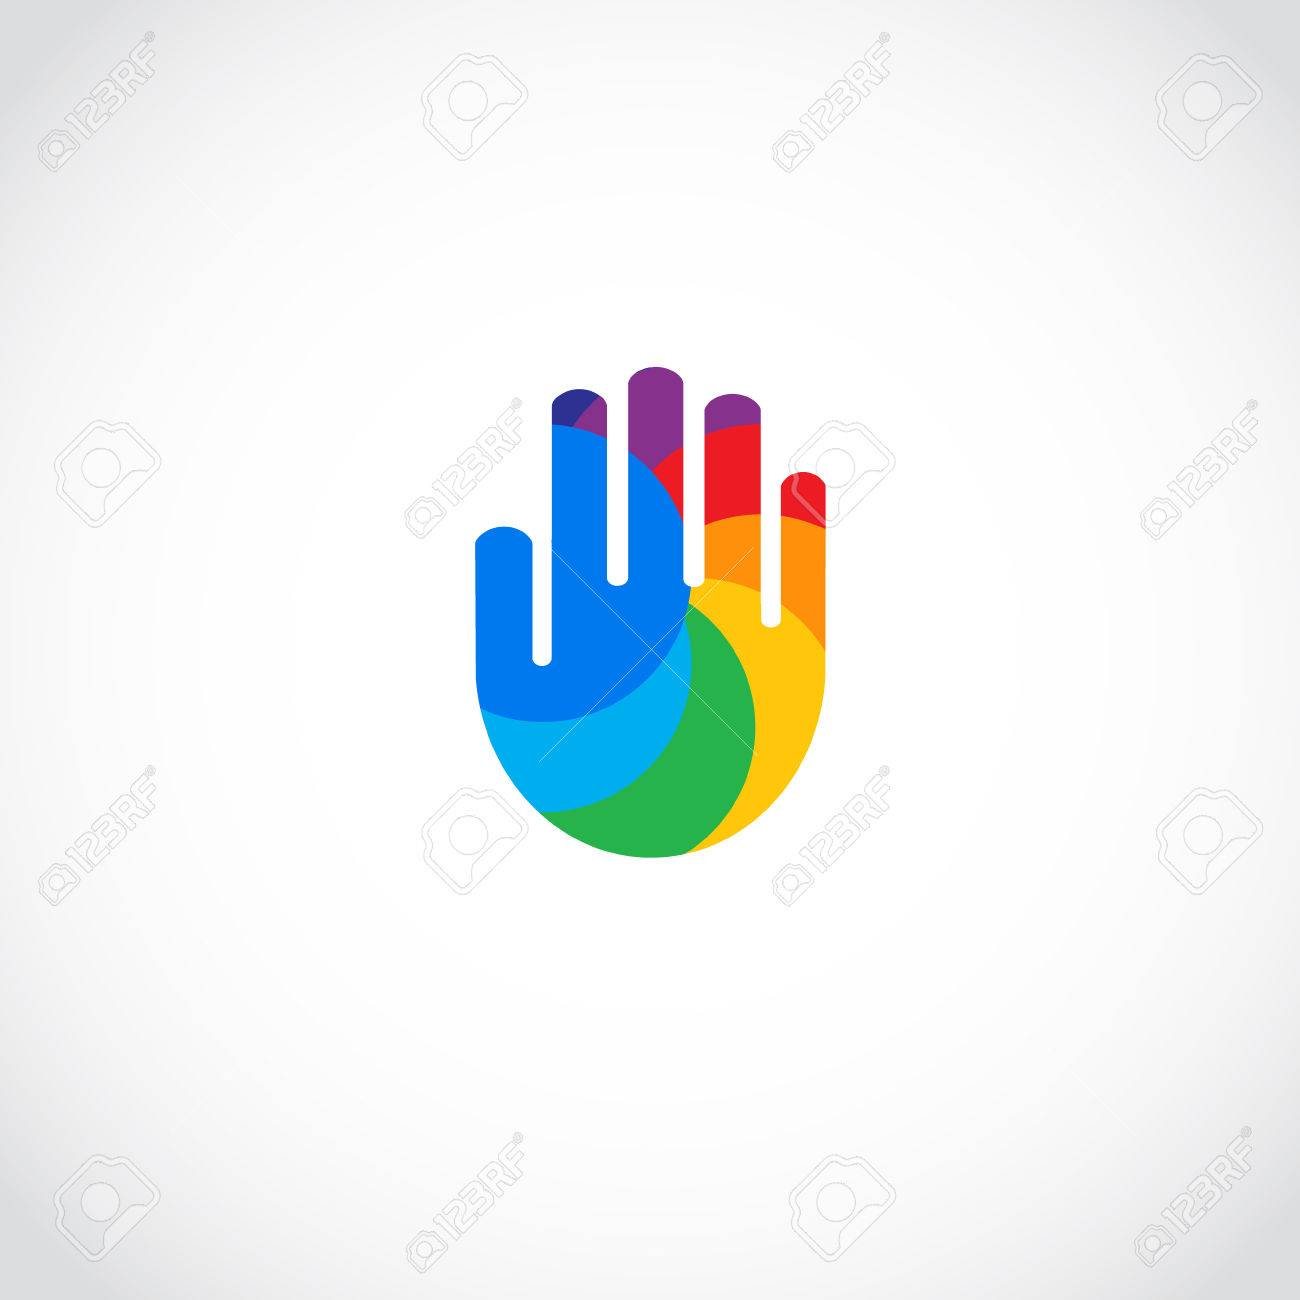 Riainbow Hand Icon Abstract Business Unity Symbol Royalty Free Cliparts Vectors And Stock Illustration Image 54334908